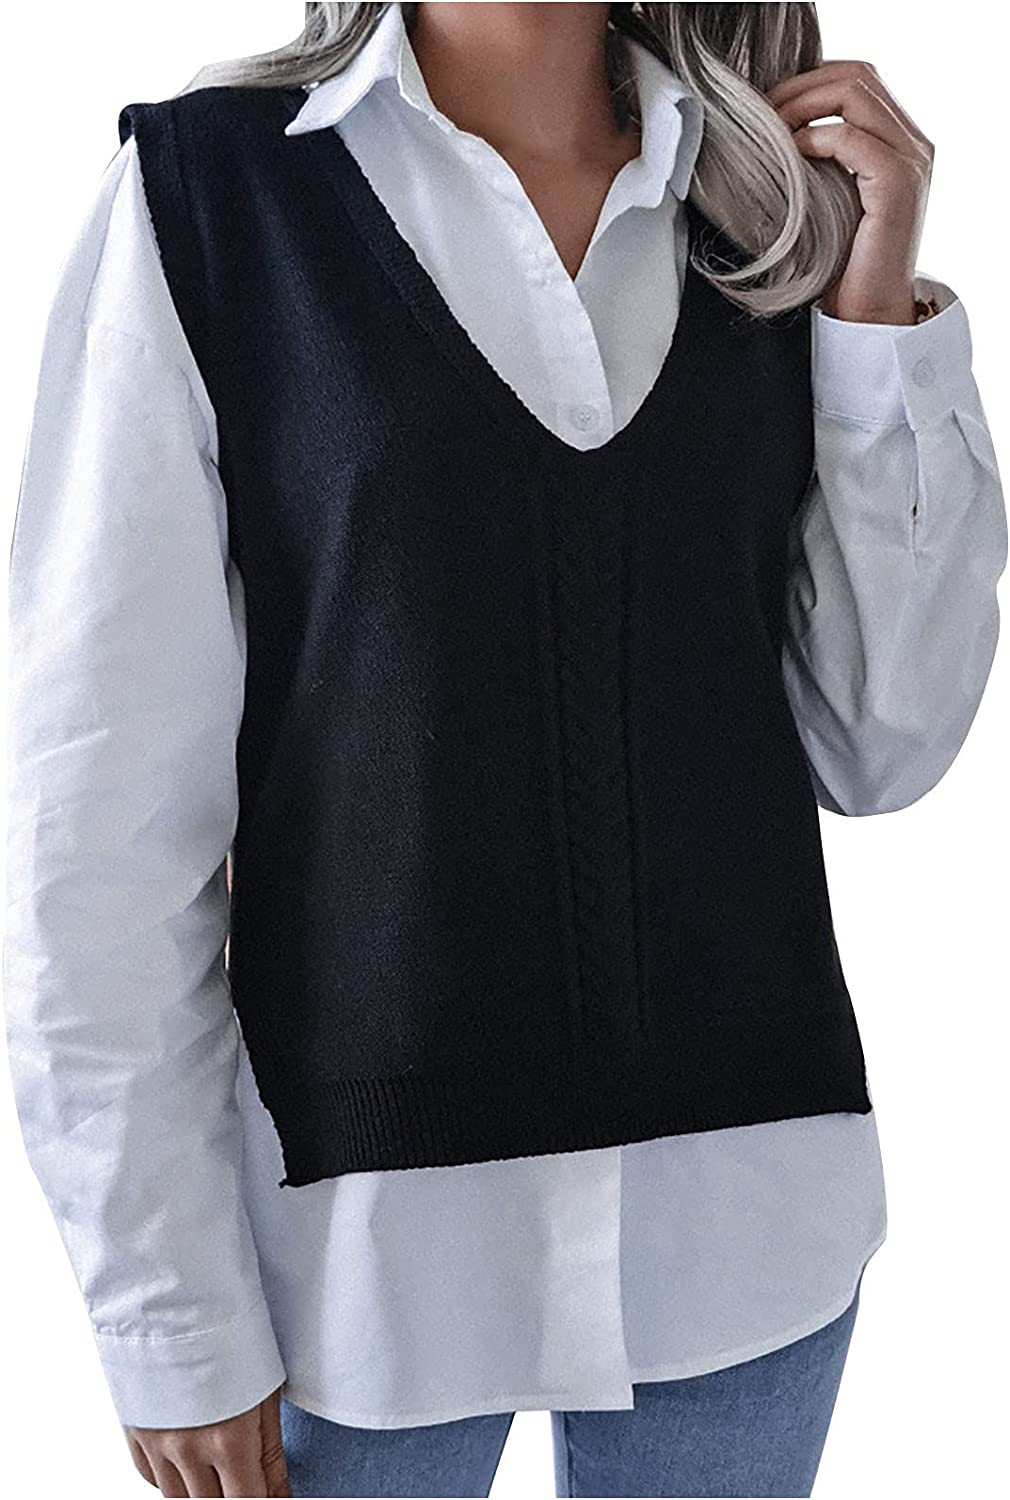 Women's Elegant Knitted Vest Sweater Casual Soft Lightweight Hollow Blouse Fashion Solid V Neck Comfortable Tops